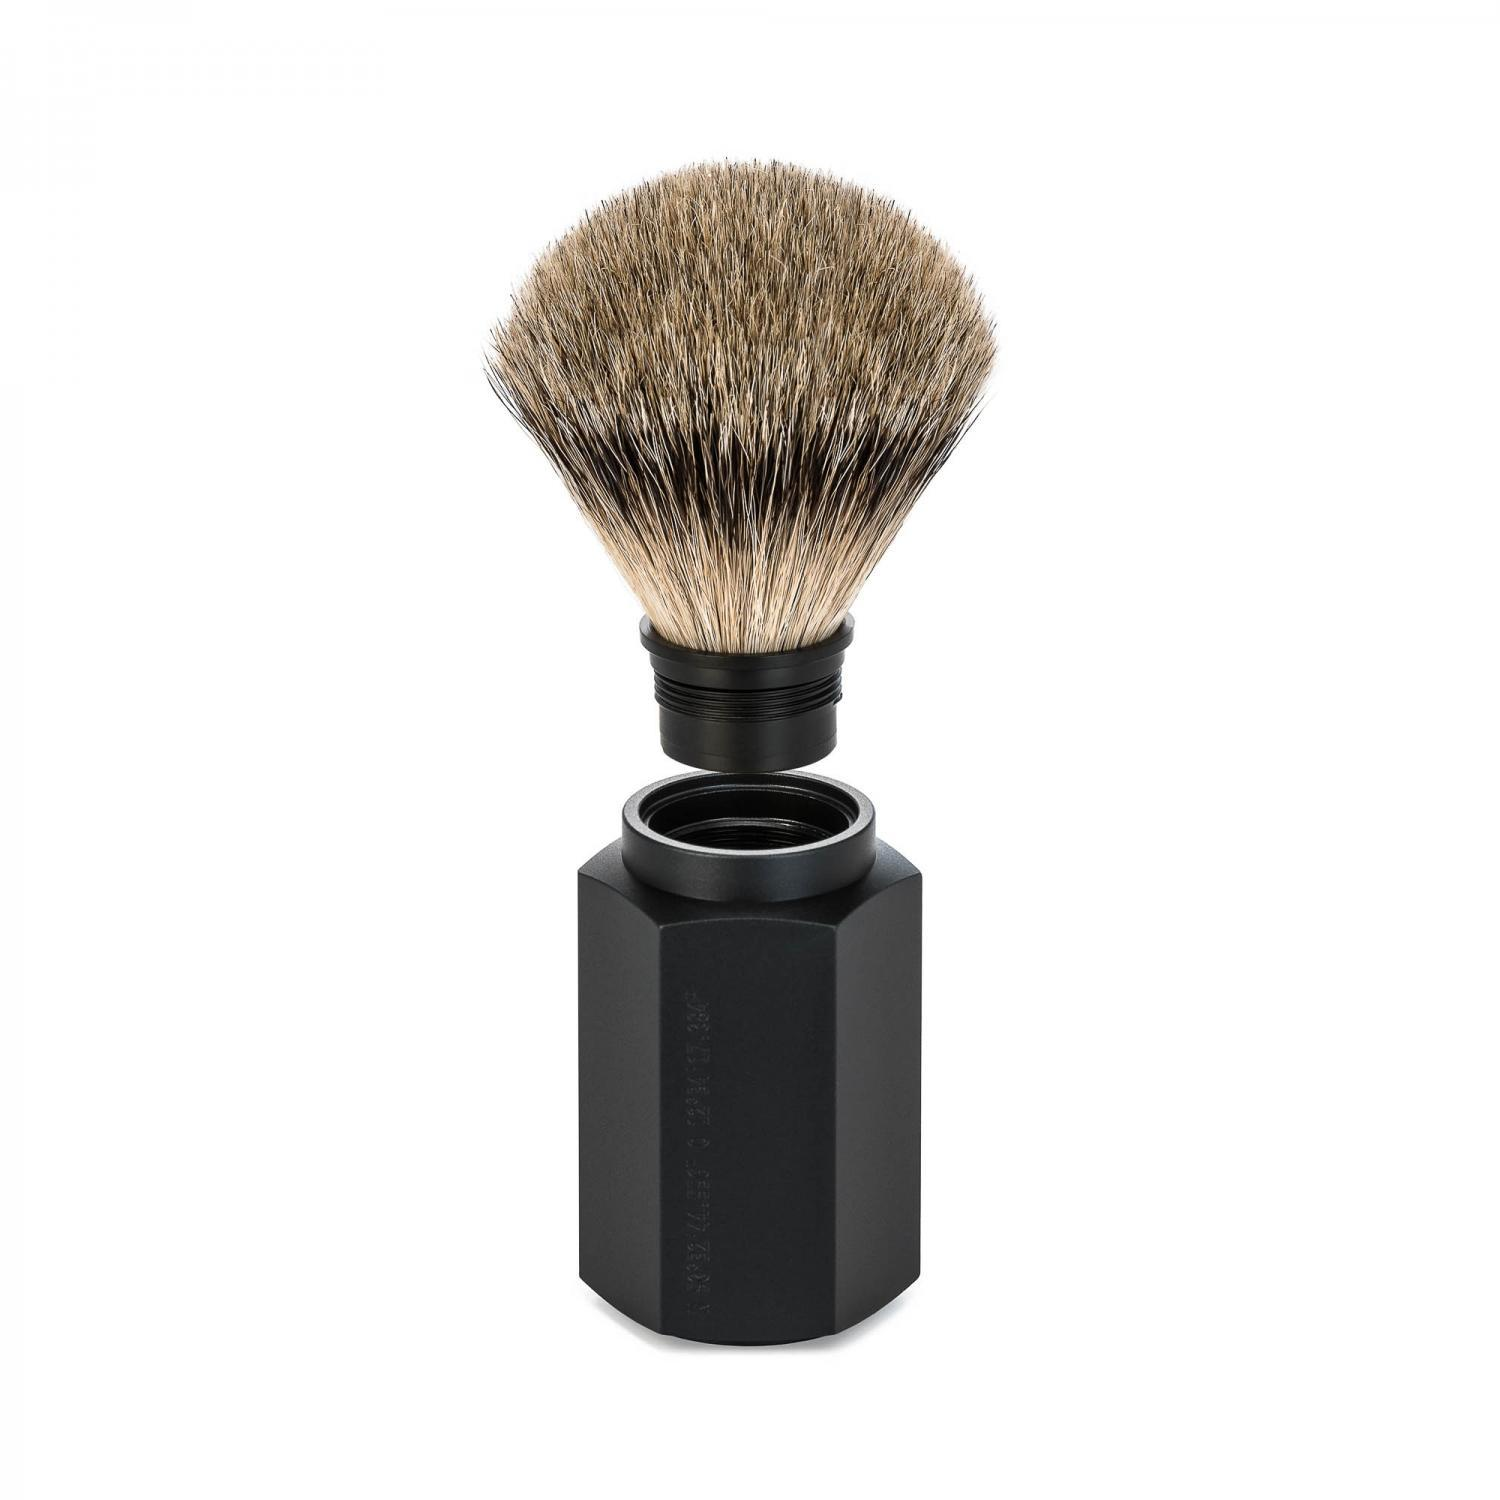 MUHLE HEXAGON Graphite Silvertip Badger Shaving Brush